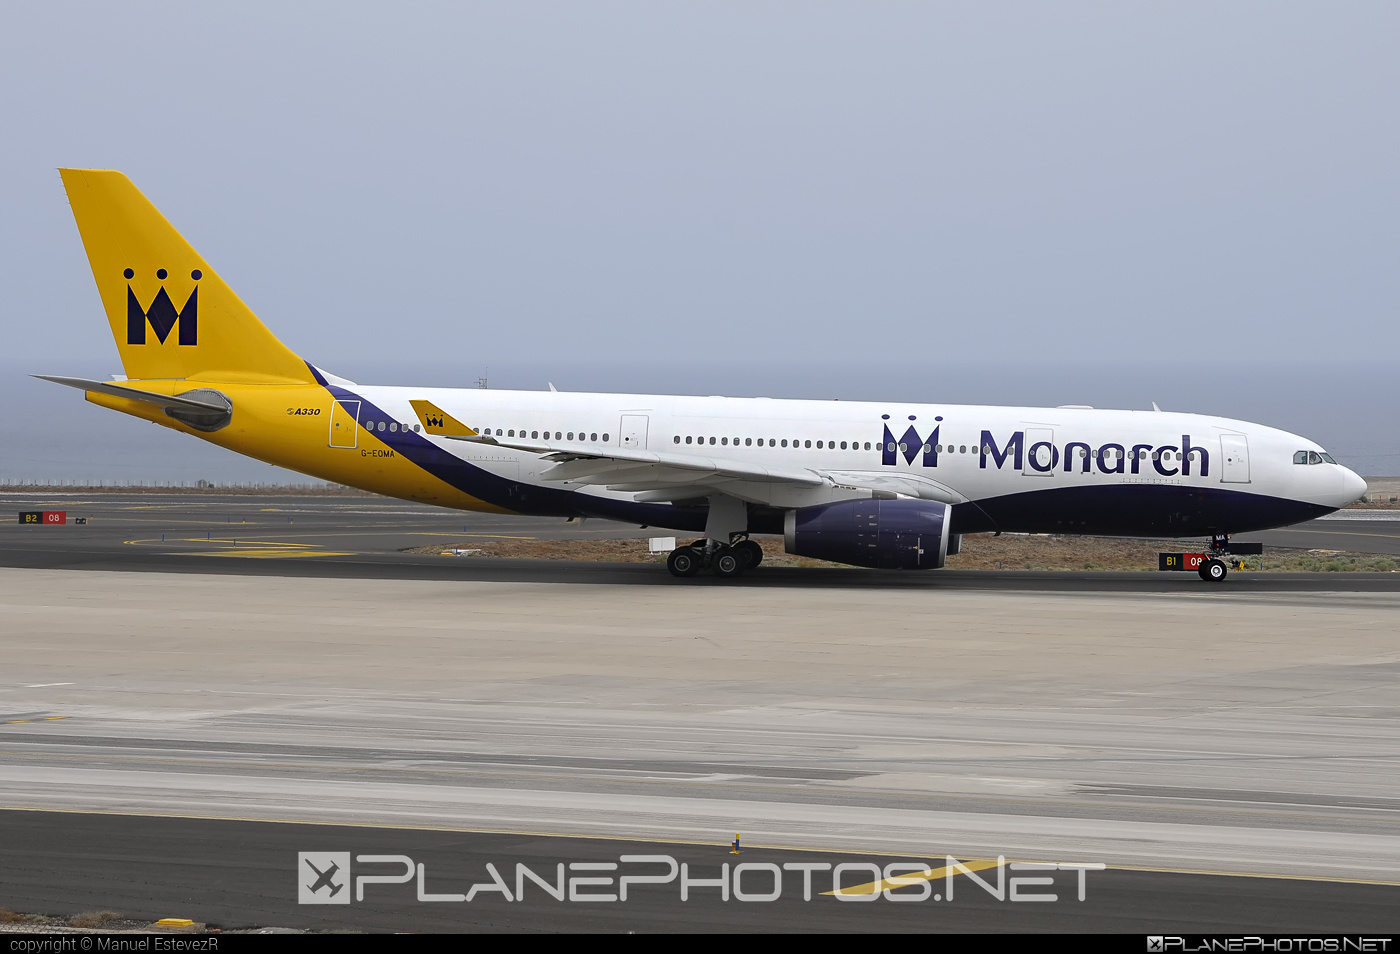 Airbus A330-243 - G-EOMA operated by Monarch Airlines #a330 #a330family #airbus #airbus330